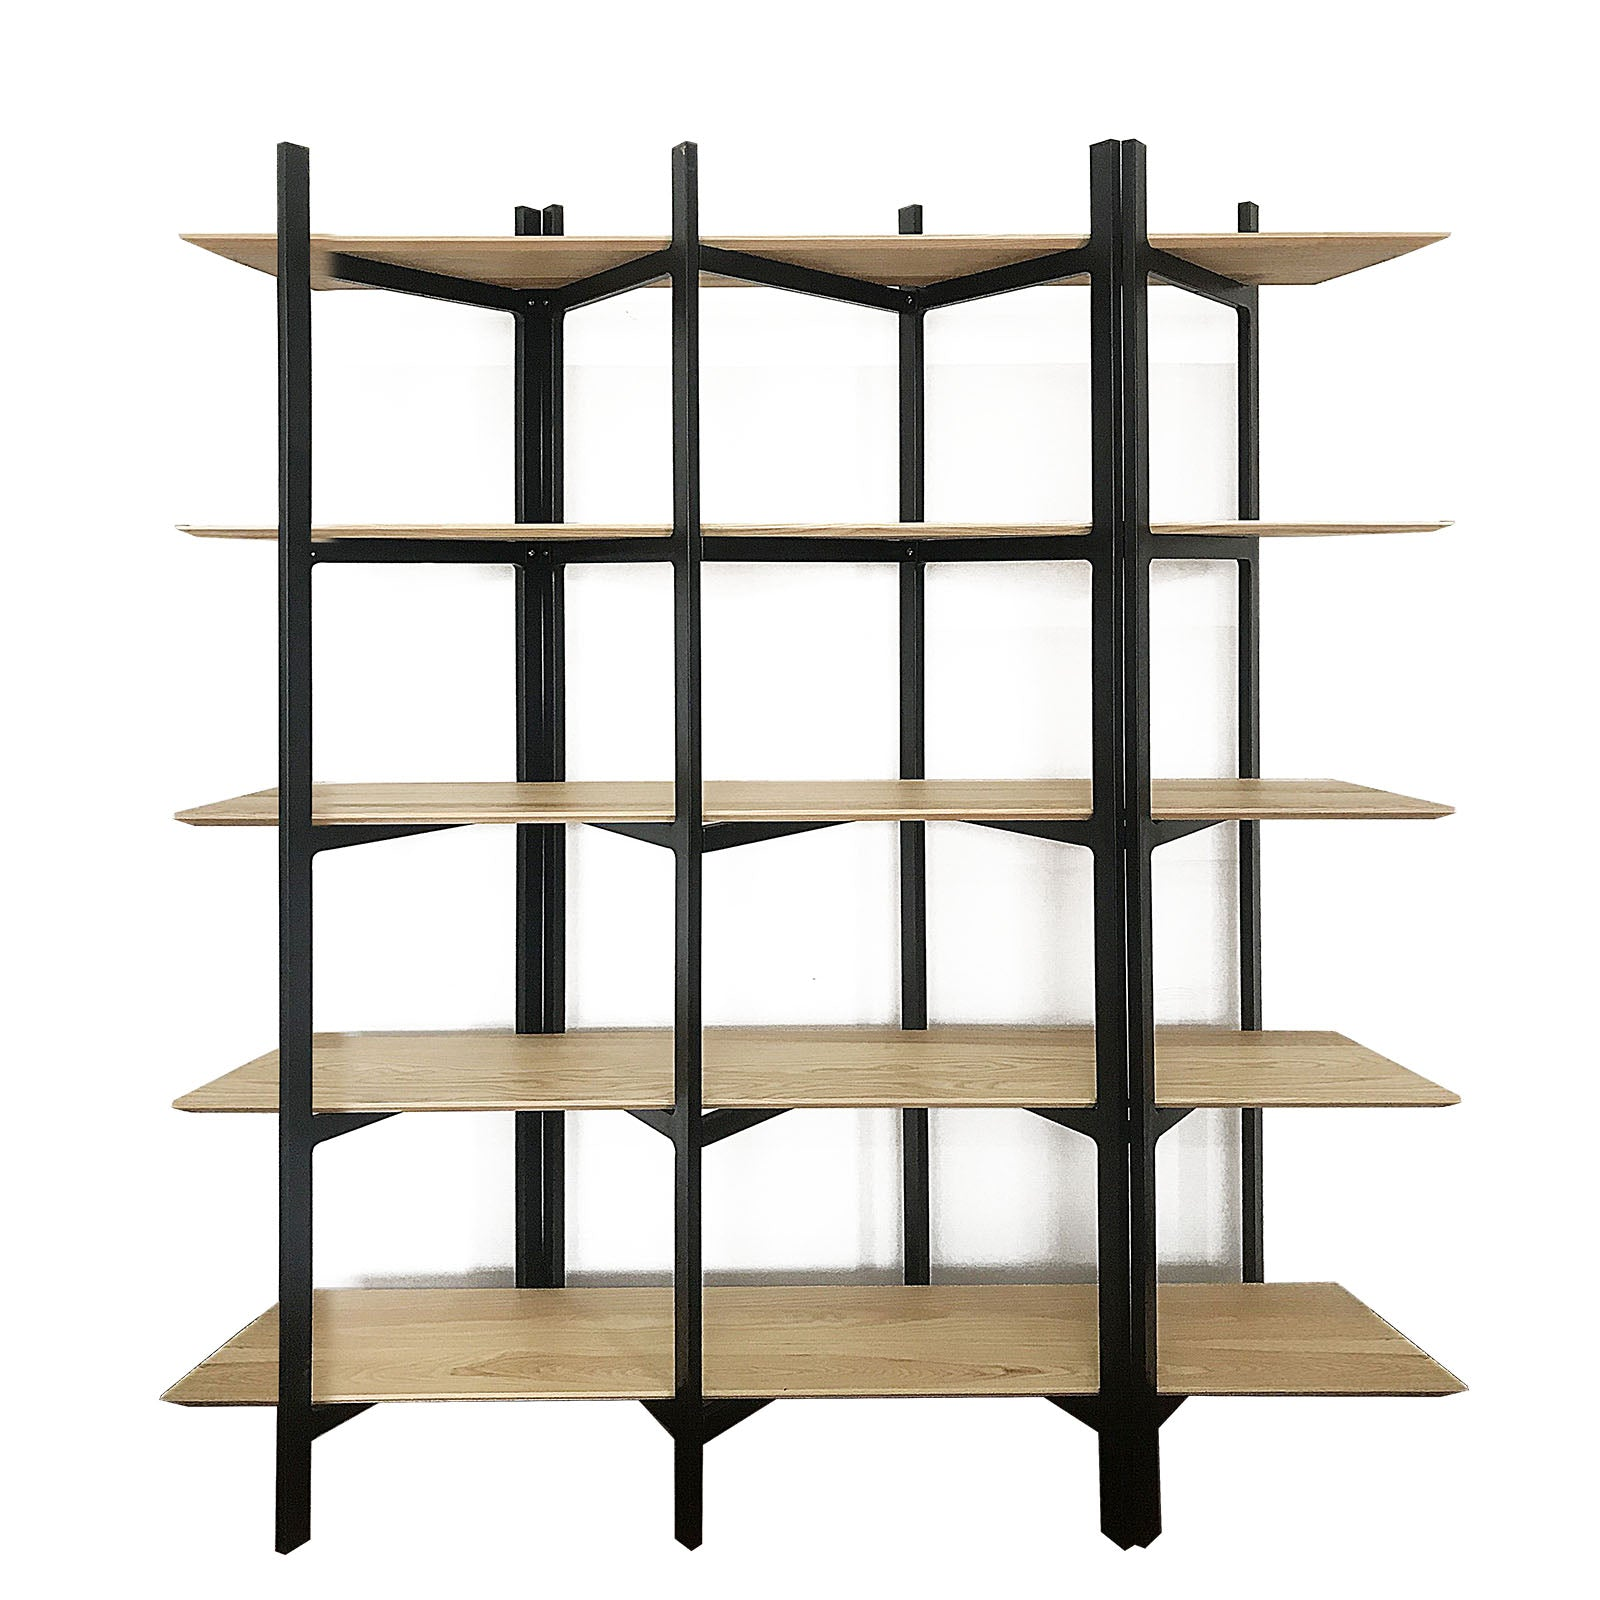 Solid wood 5 levels shelf SP17359XL-N